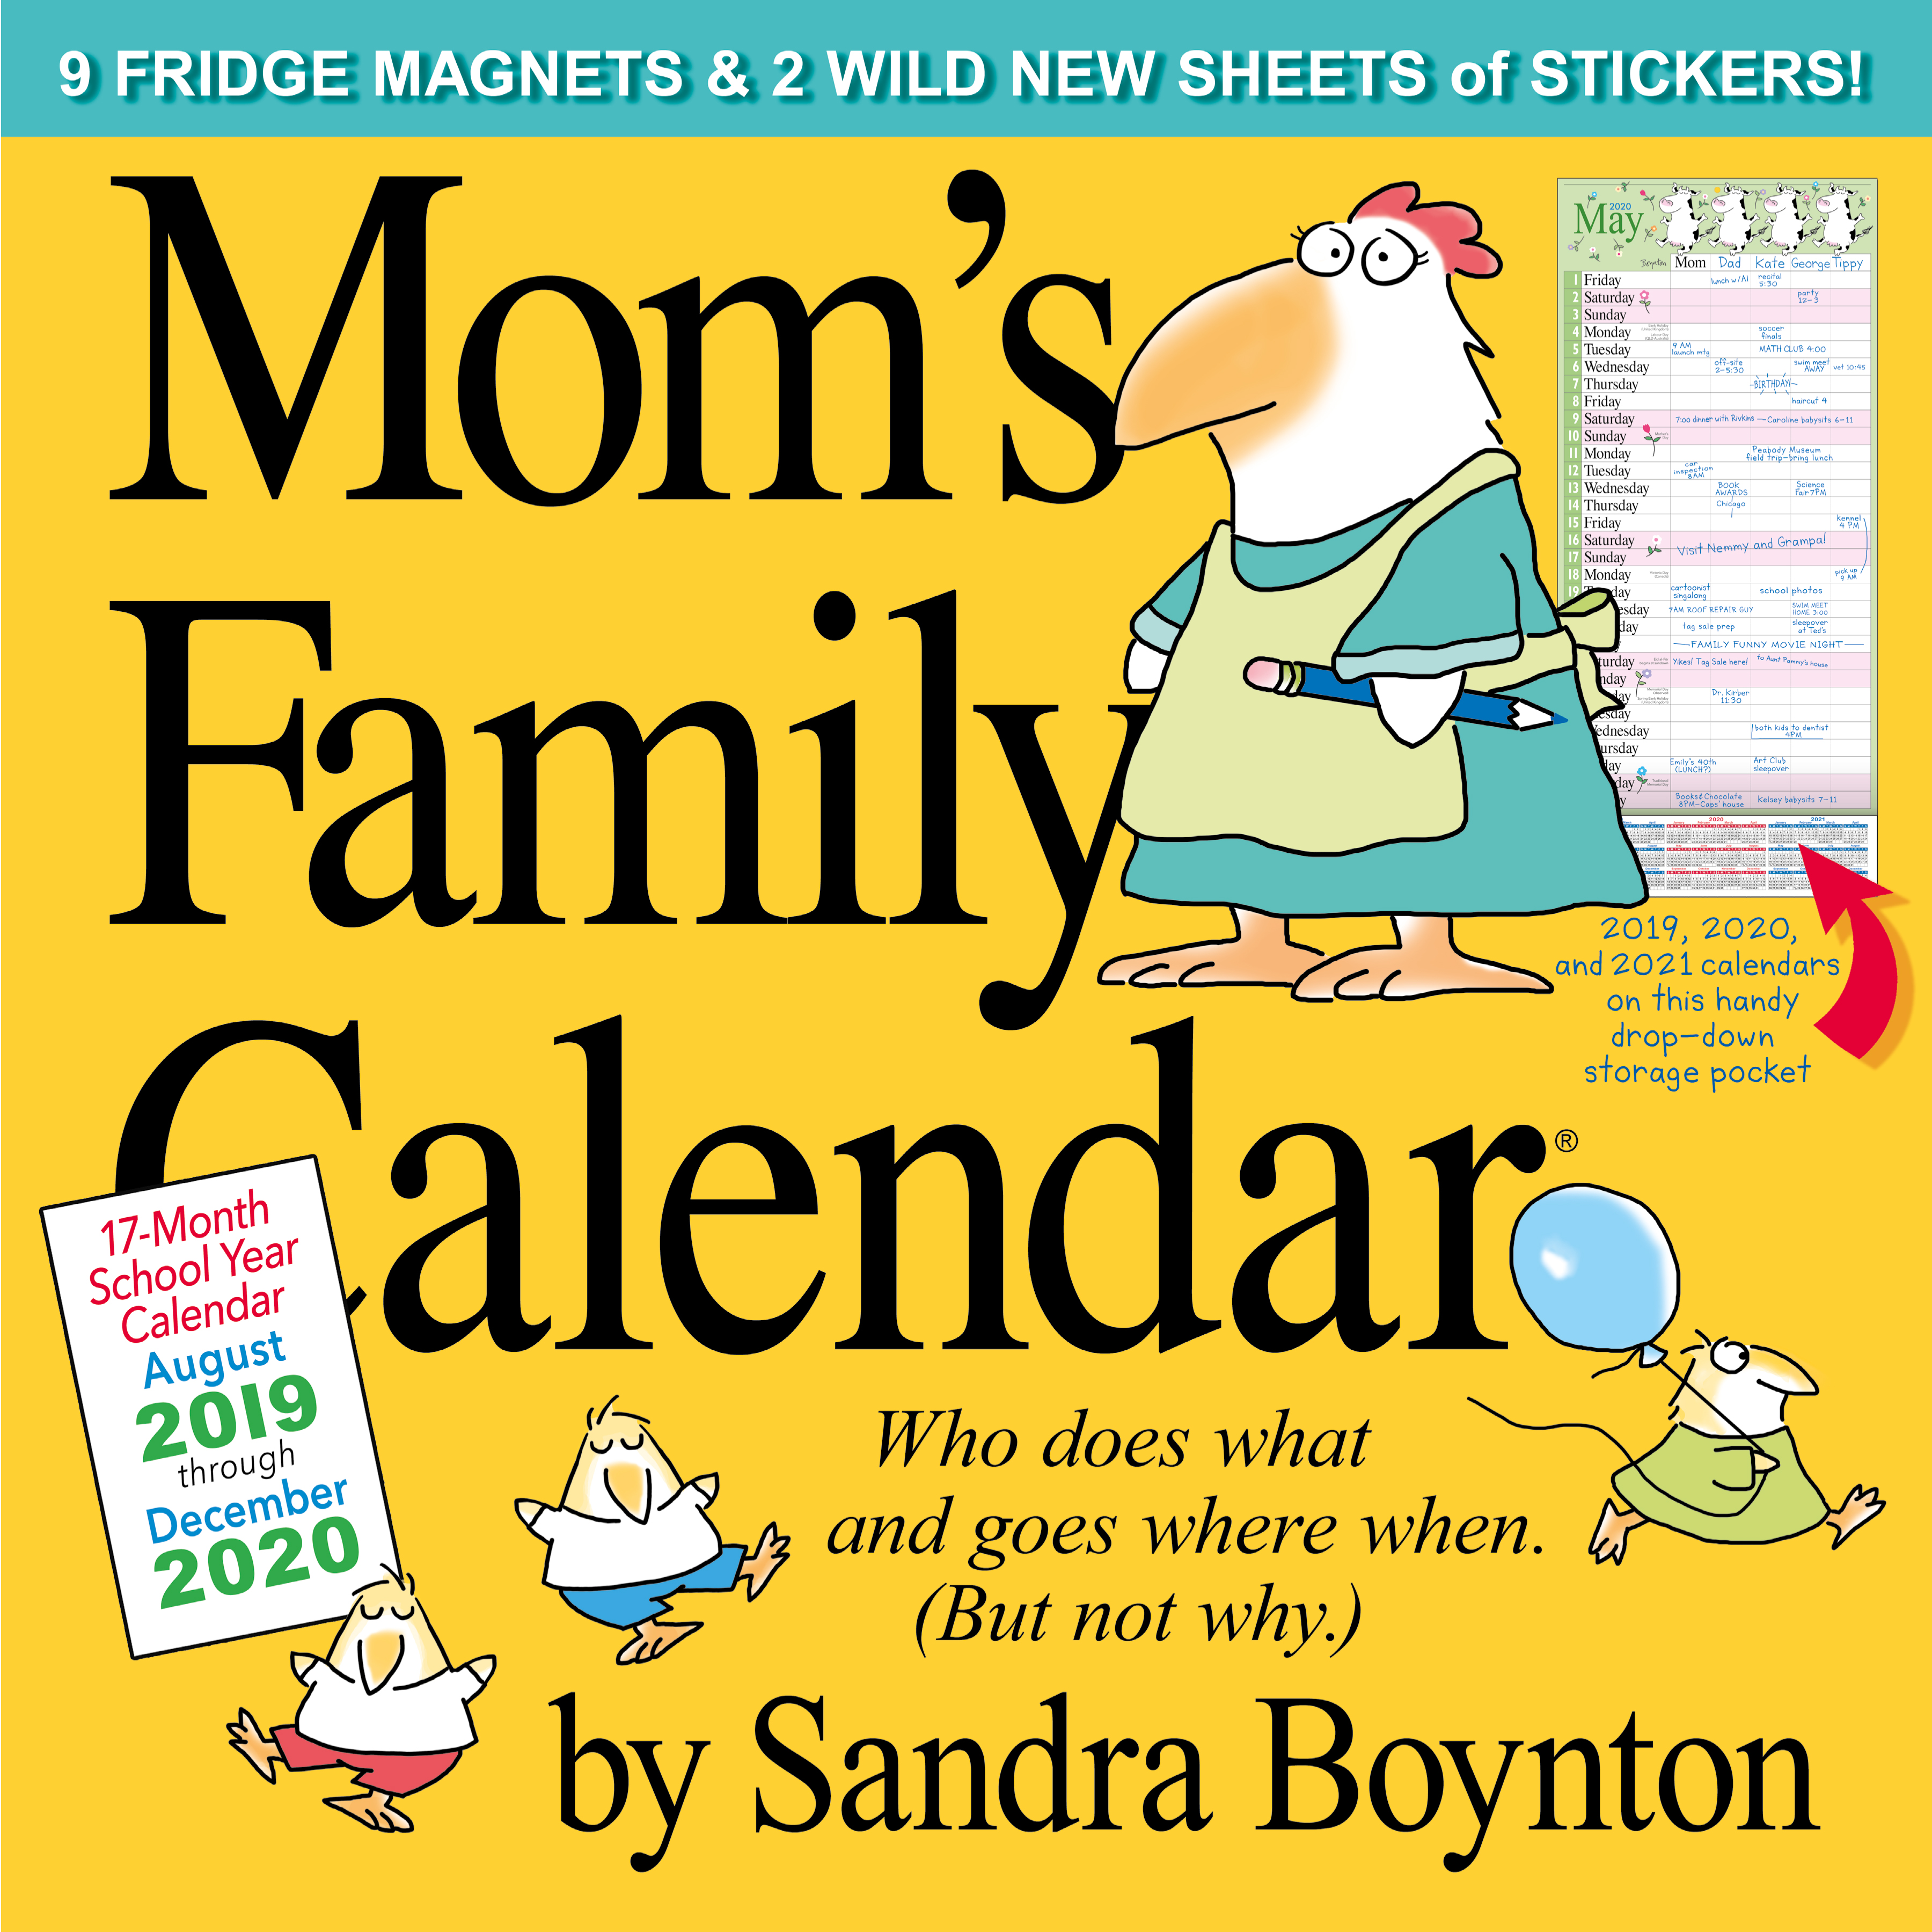 Lunar Days Calendar December 2020 Chicago Mom's Family Wall Calendar 2020   Workman Publishing